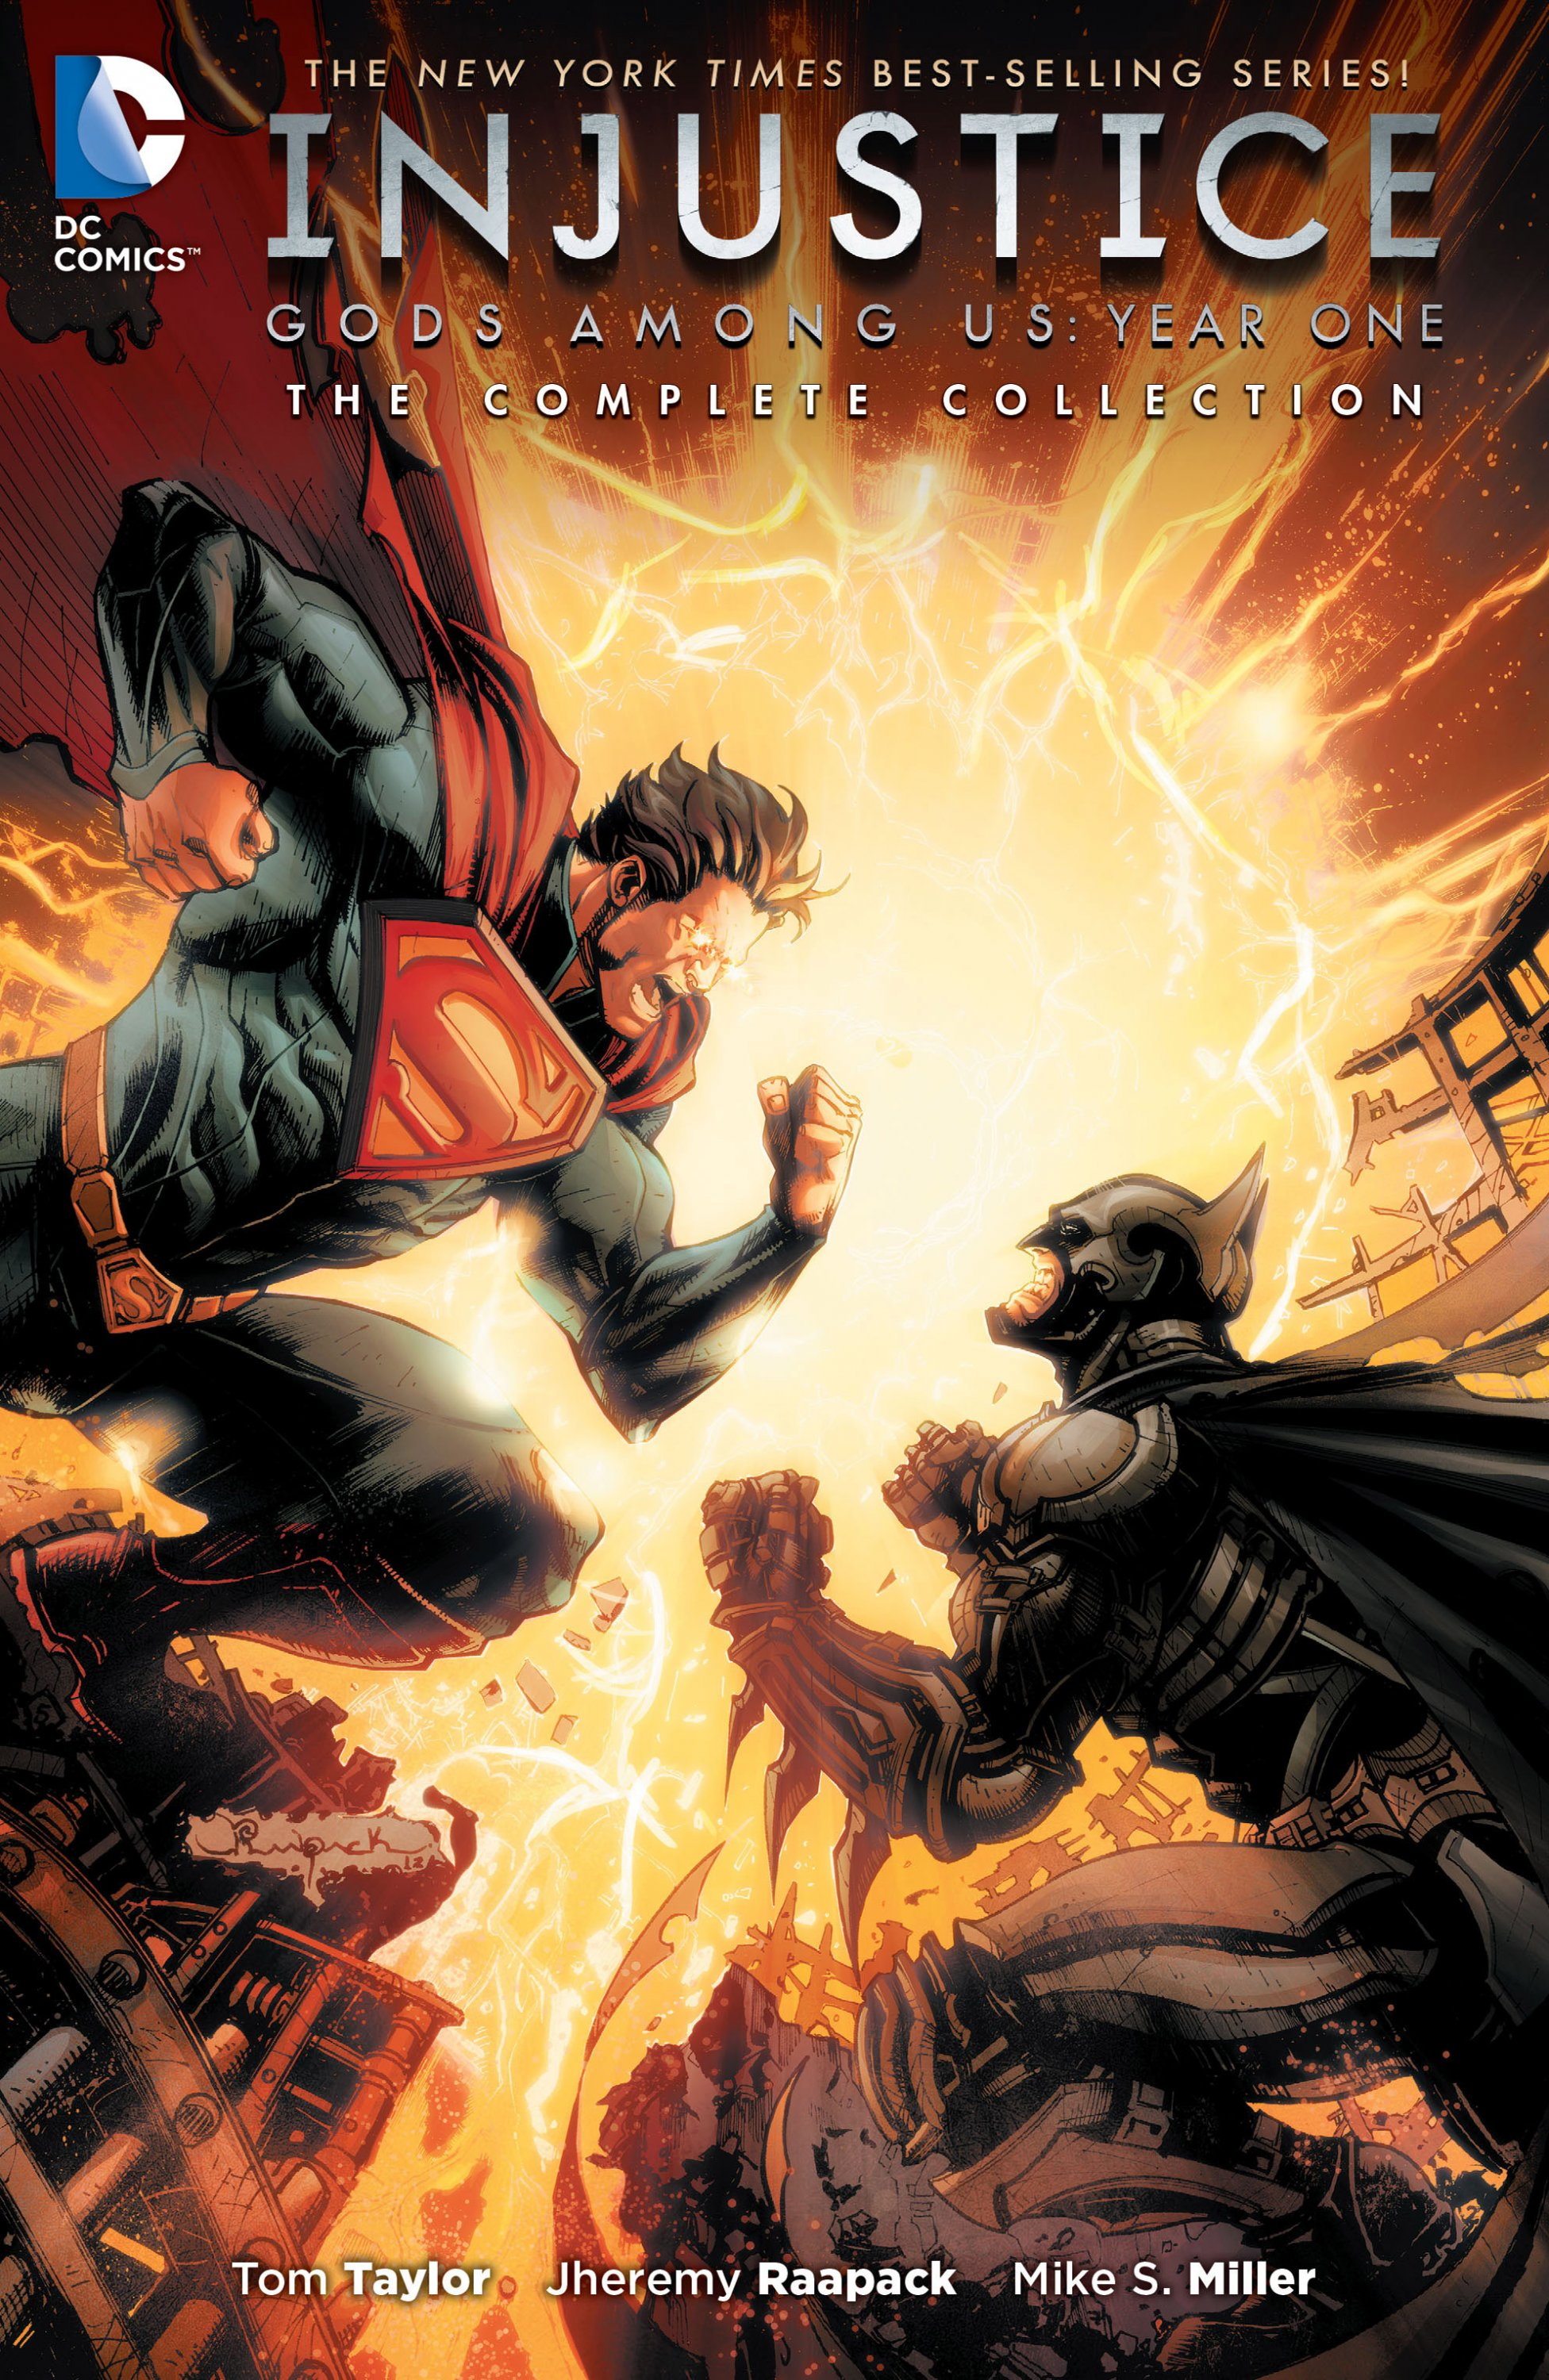 Injustice: Gods Among Us - Year One: The Complete Collection